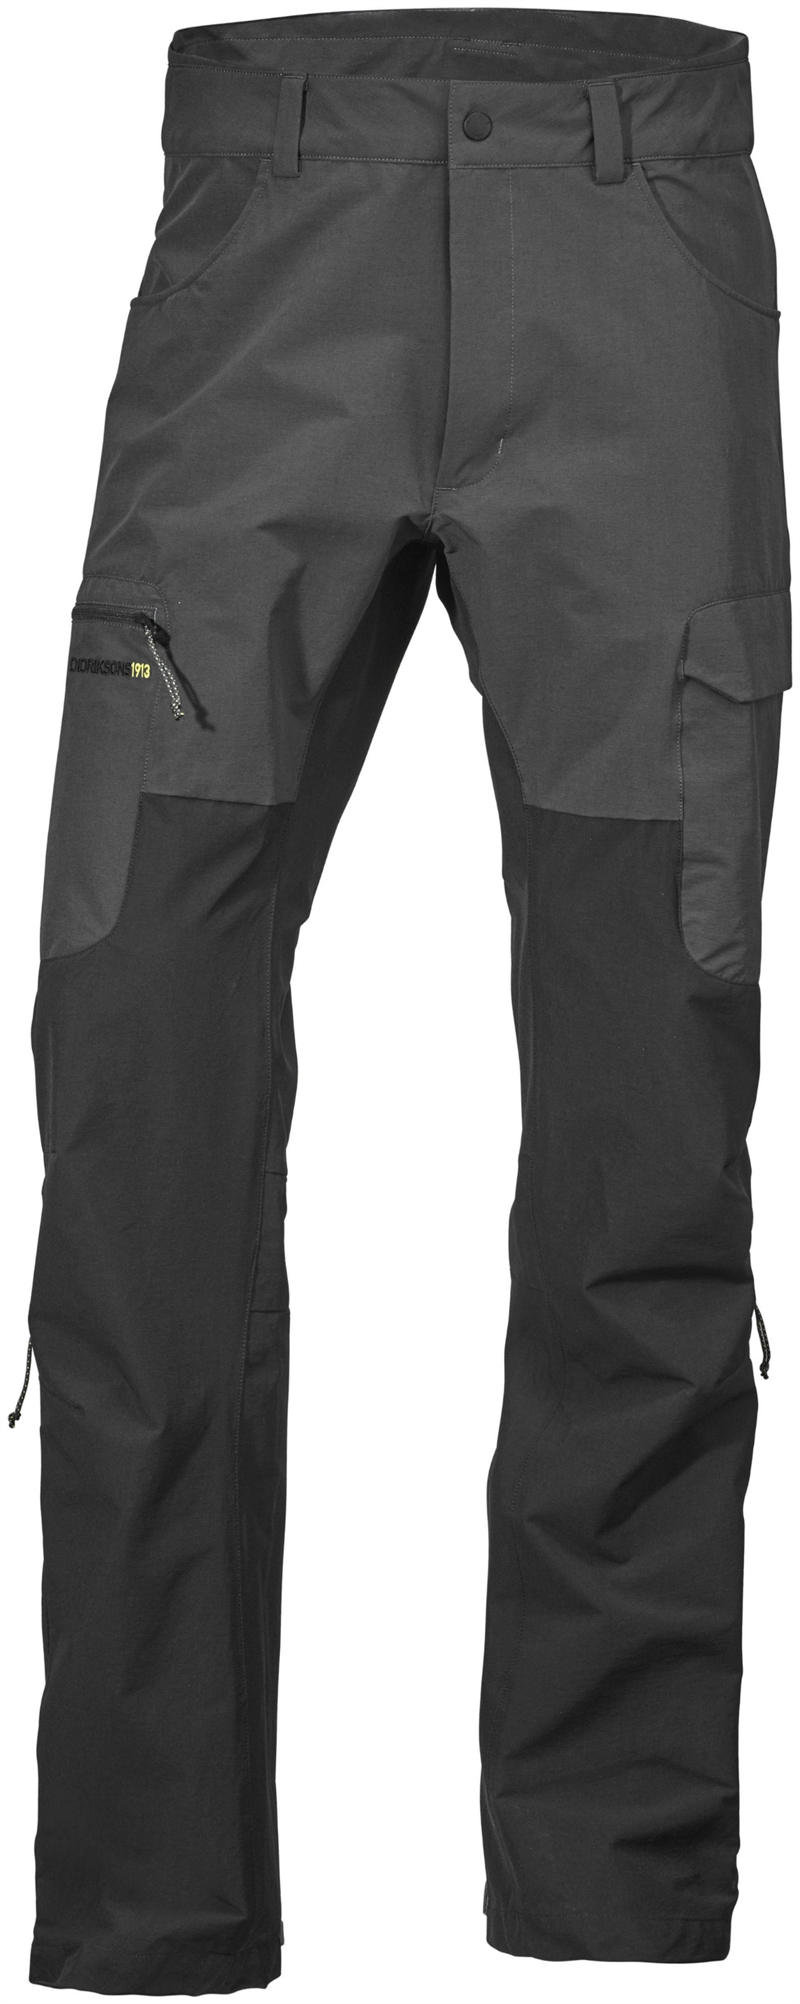 Spencer Mens Pants Outdoor Coal Black Didriksons Fritidsbyxa